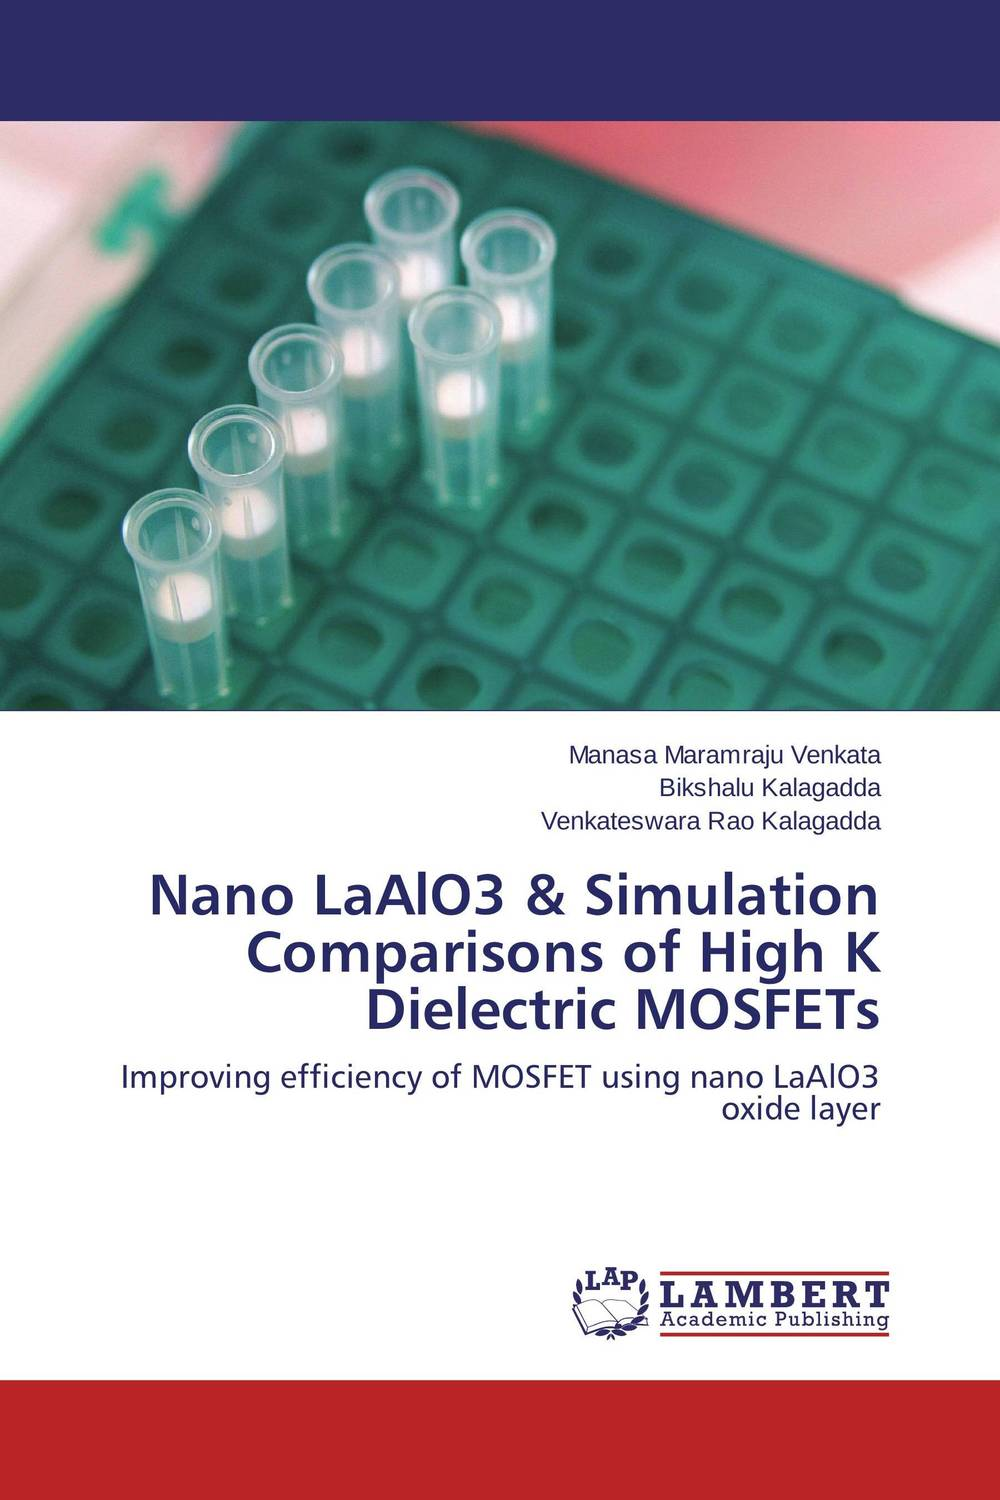 Nano LaAlO3 & Simulation Comparisons of High K Dielectric MOSFETs ashok yadav r d askhedkar and s k choudhary synthesis and simulation of trolley for patient handling